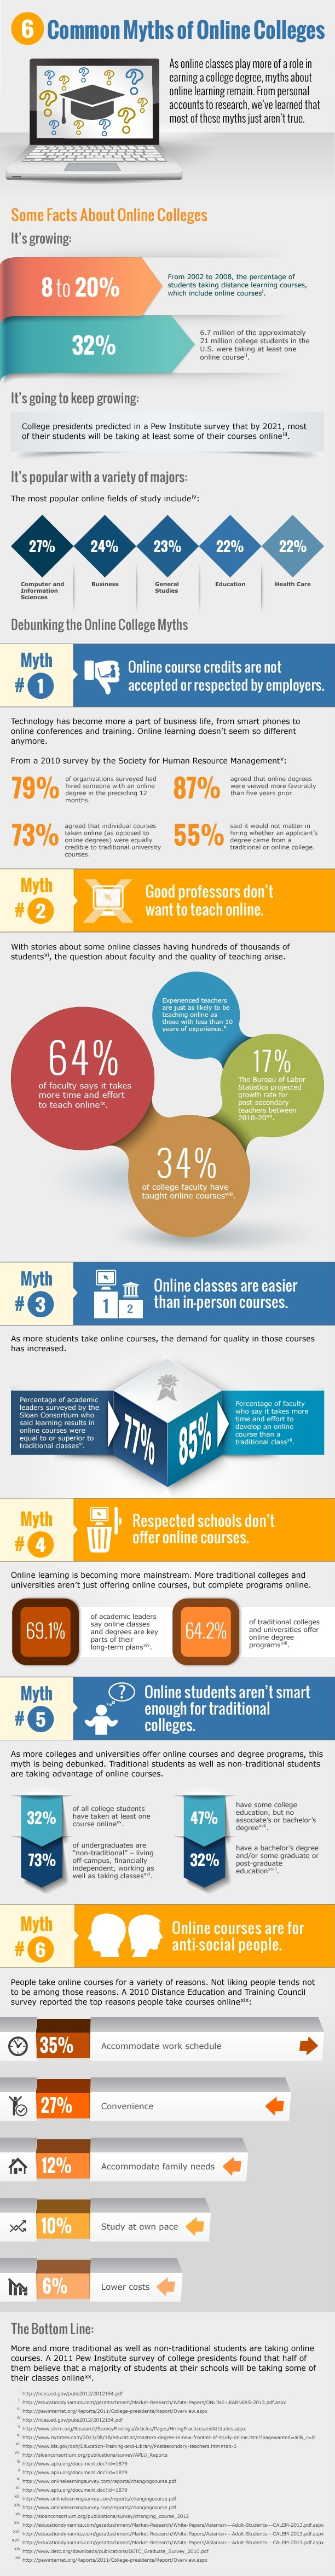 myths of online college